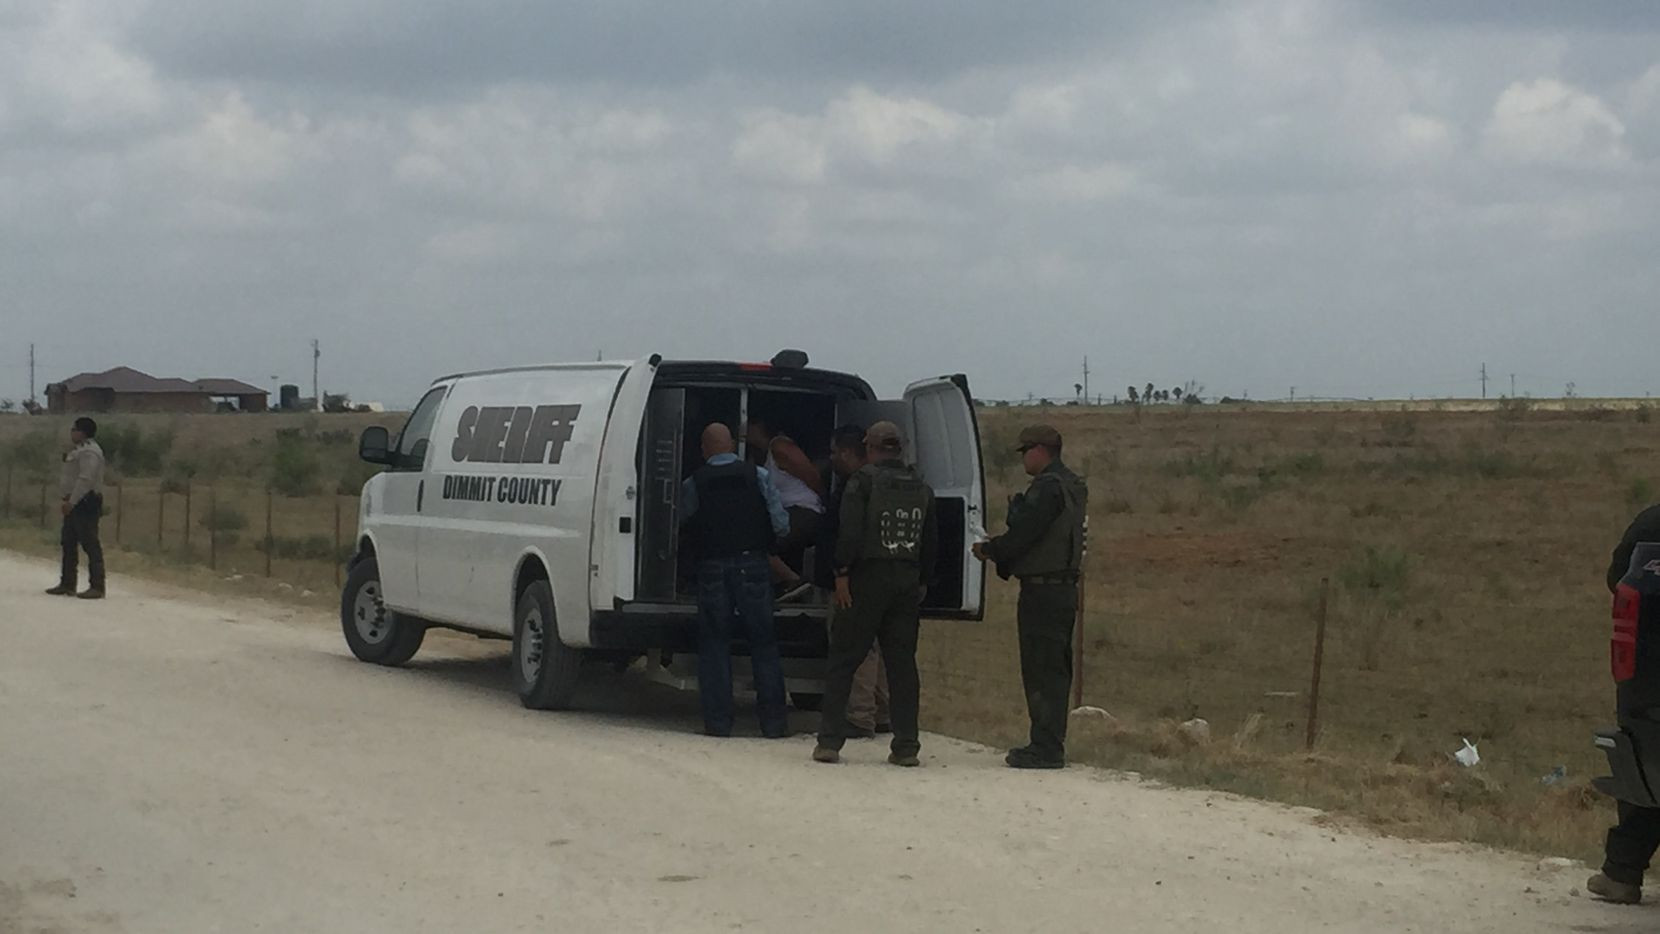 Dimmit County Sheriff's deputies inspect three people arrested following an immigration protest in Carrizo Springs where protesters called for an end to the detention of migrant children, following the opening of a new facility in the city.